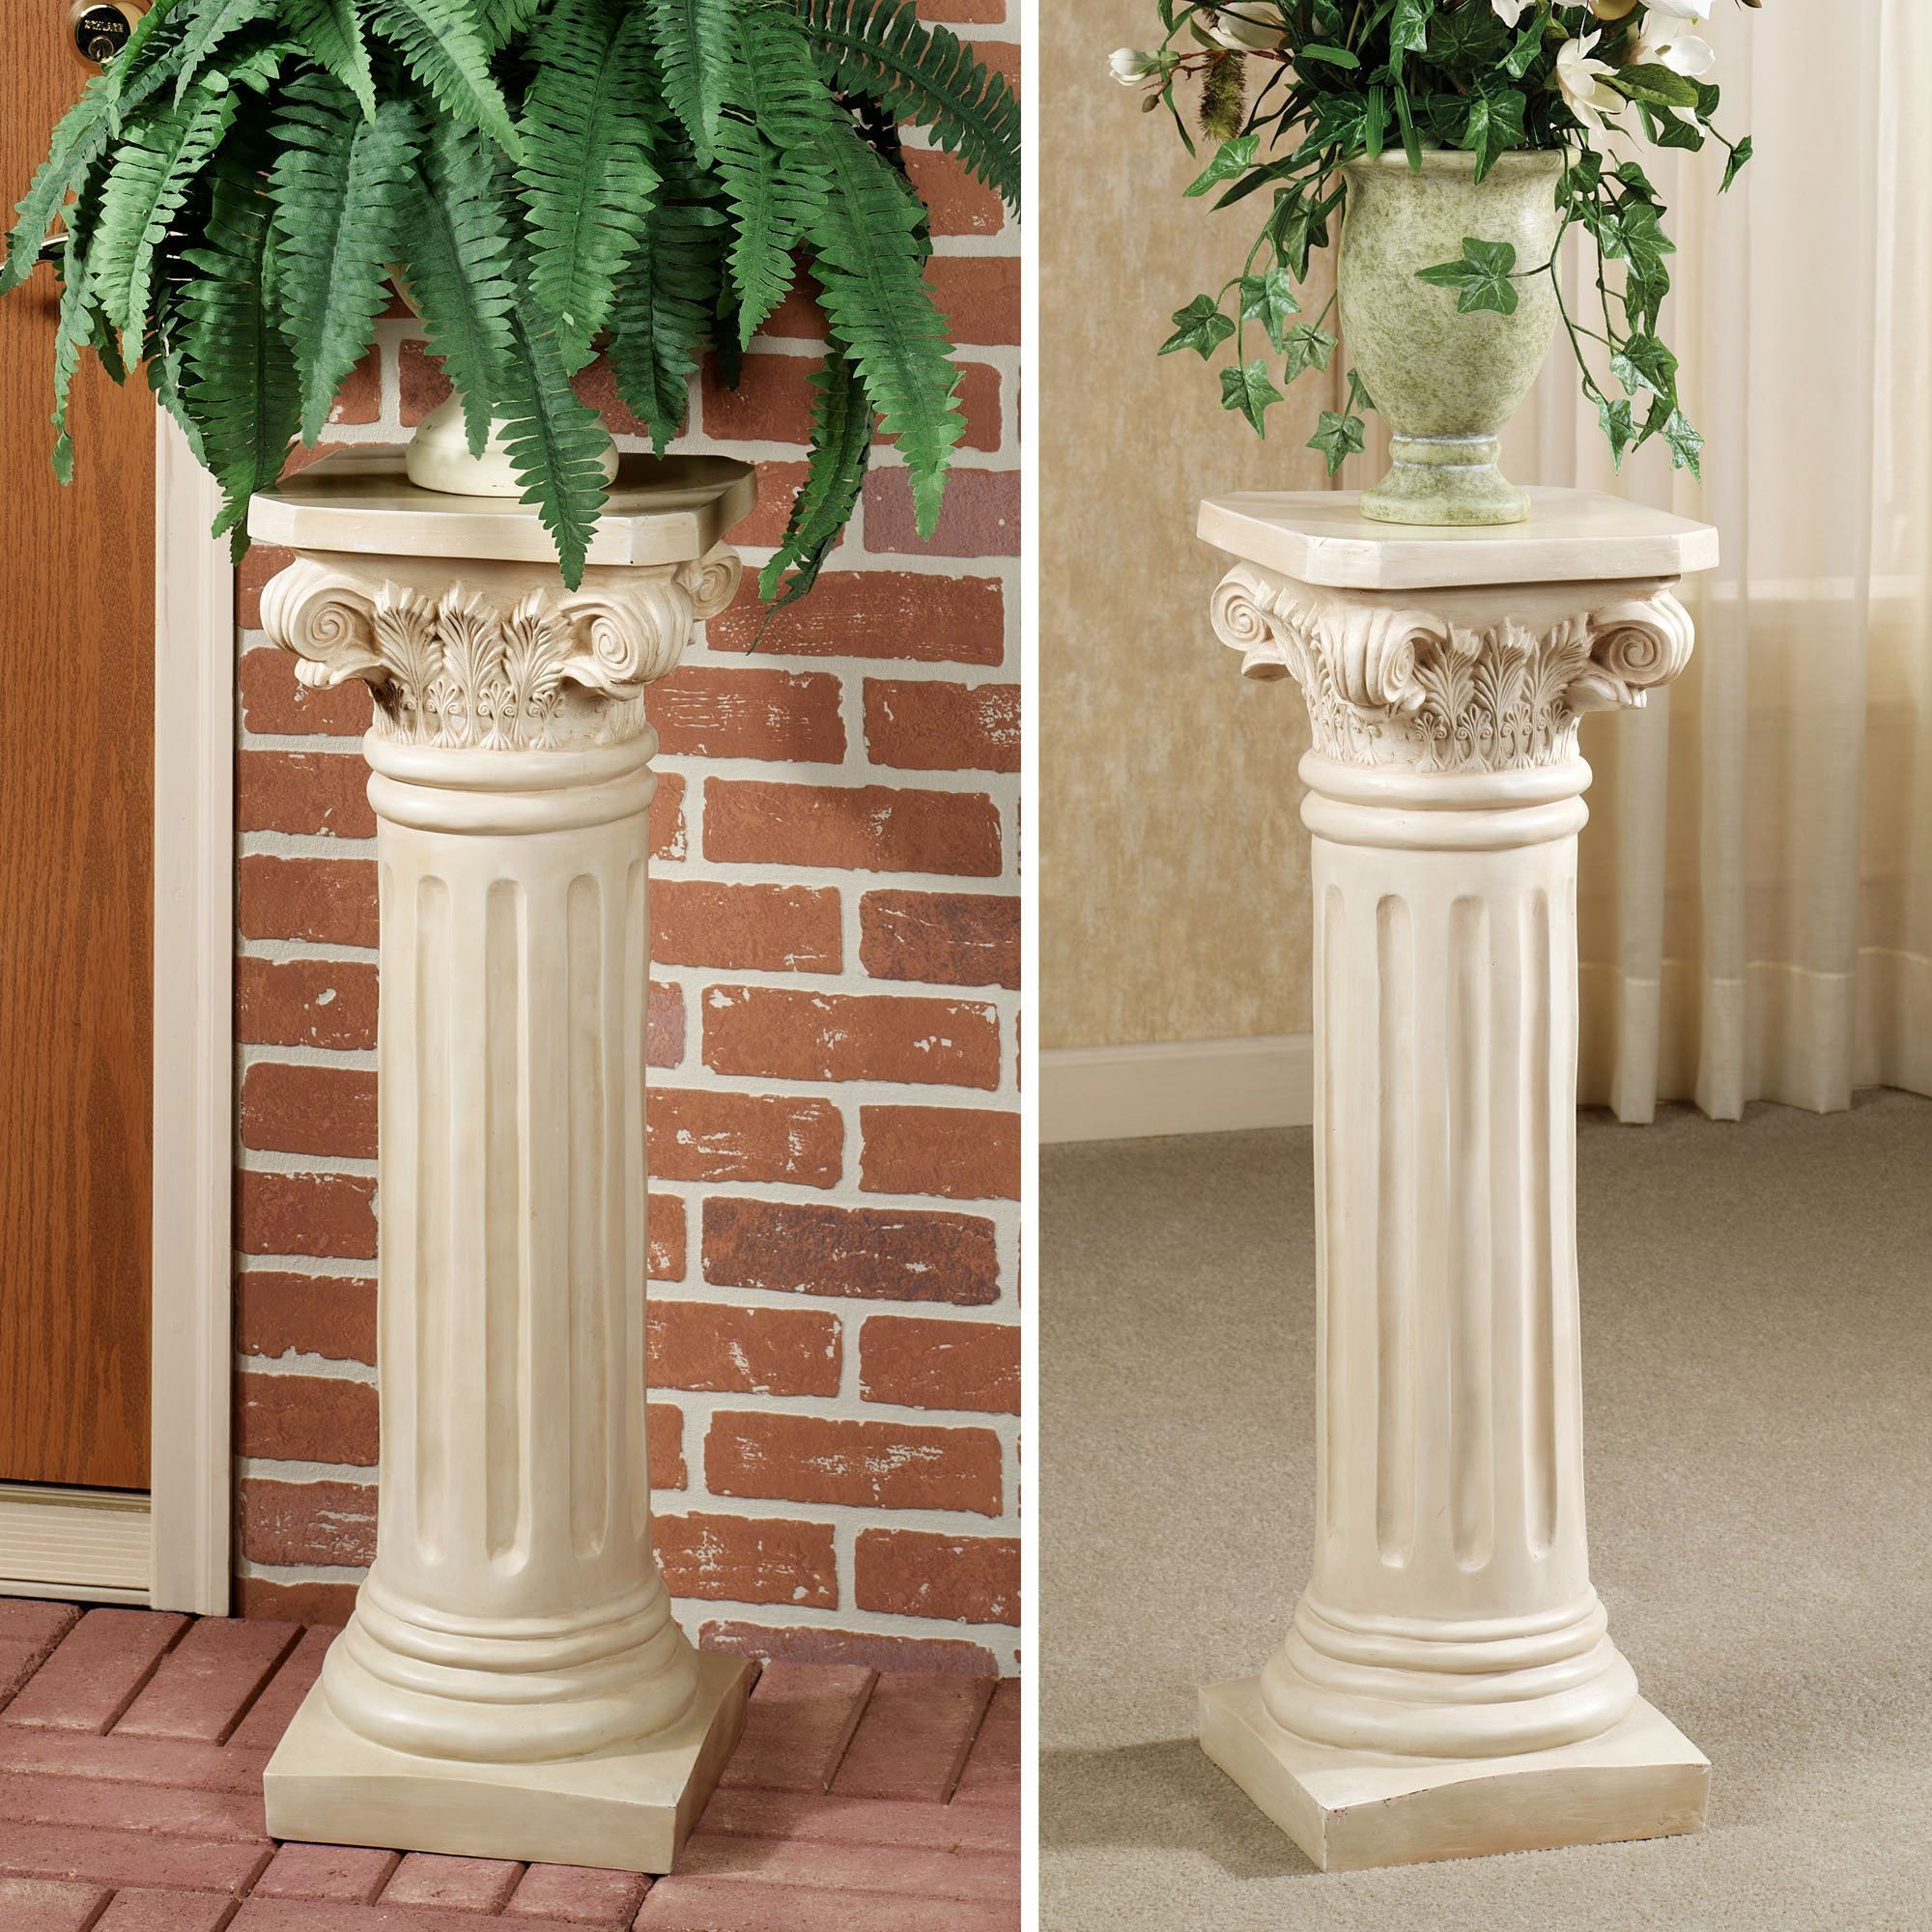 White Pedestal Plant Stands Classic Roman Column Pedestal Ideas For The House